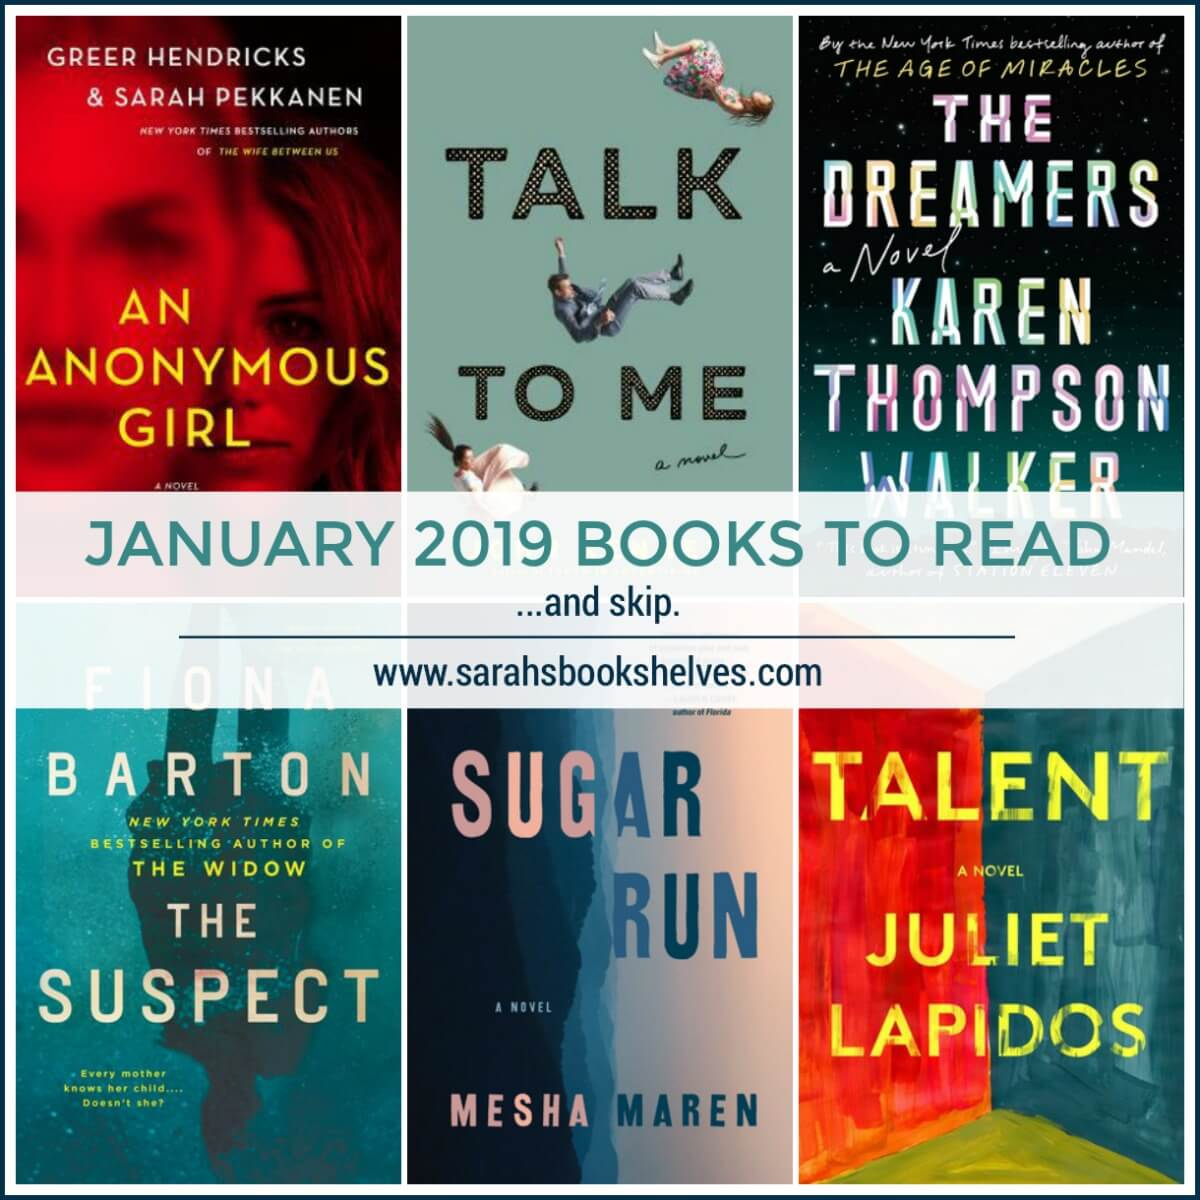 January 2019 Books to Read